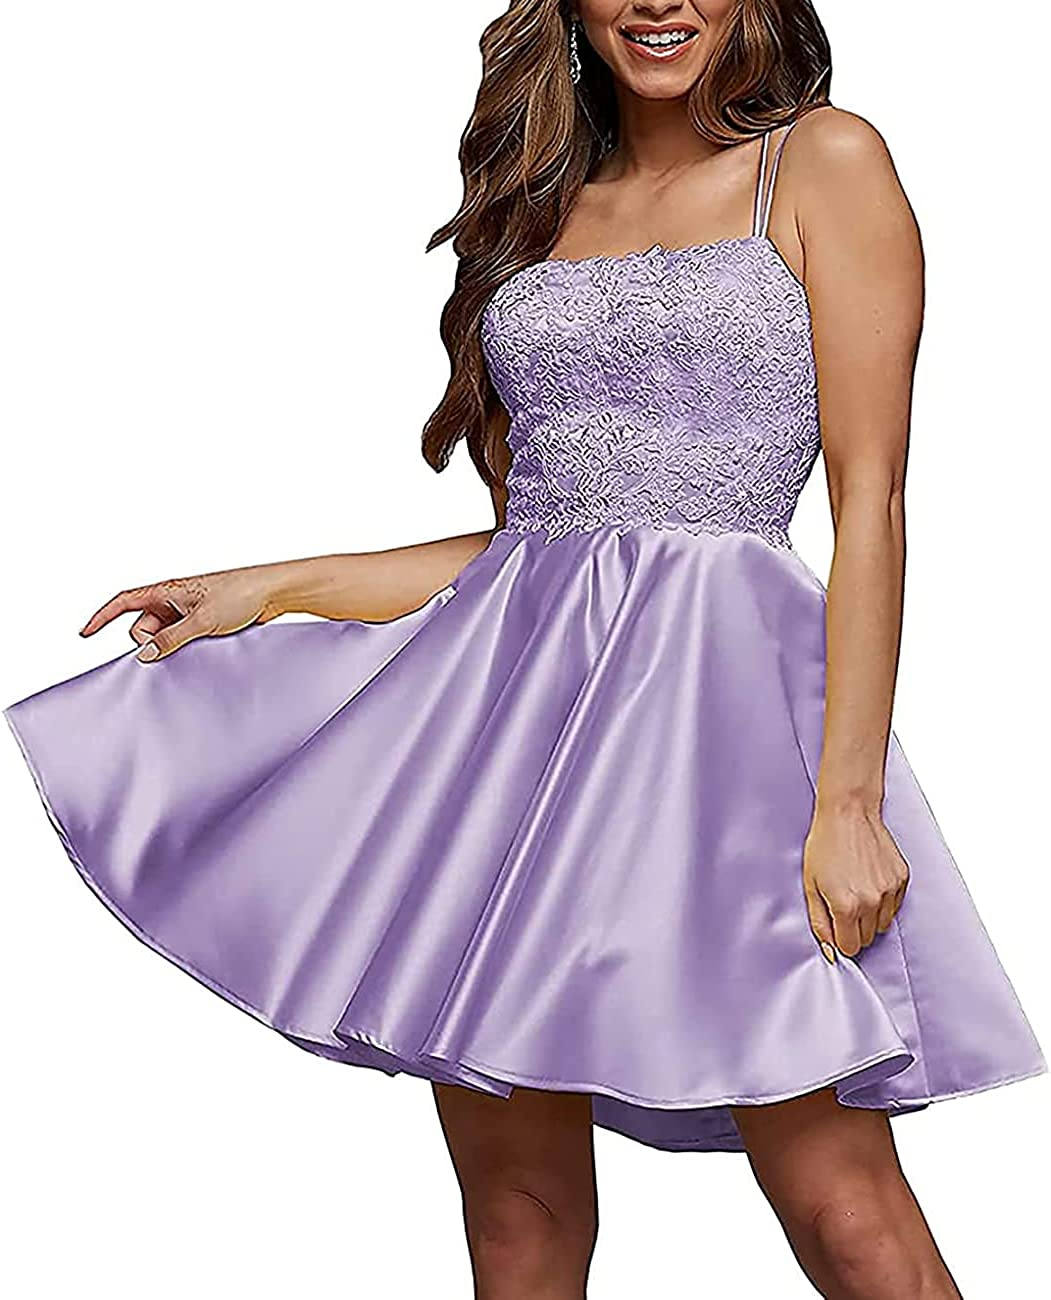 Acenia Women's Satin Homecoming Dresses Short Prom Gown Cocktail Dresse with Pockets A118